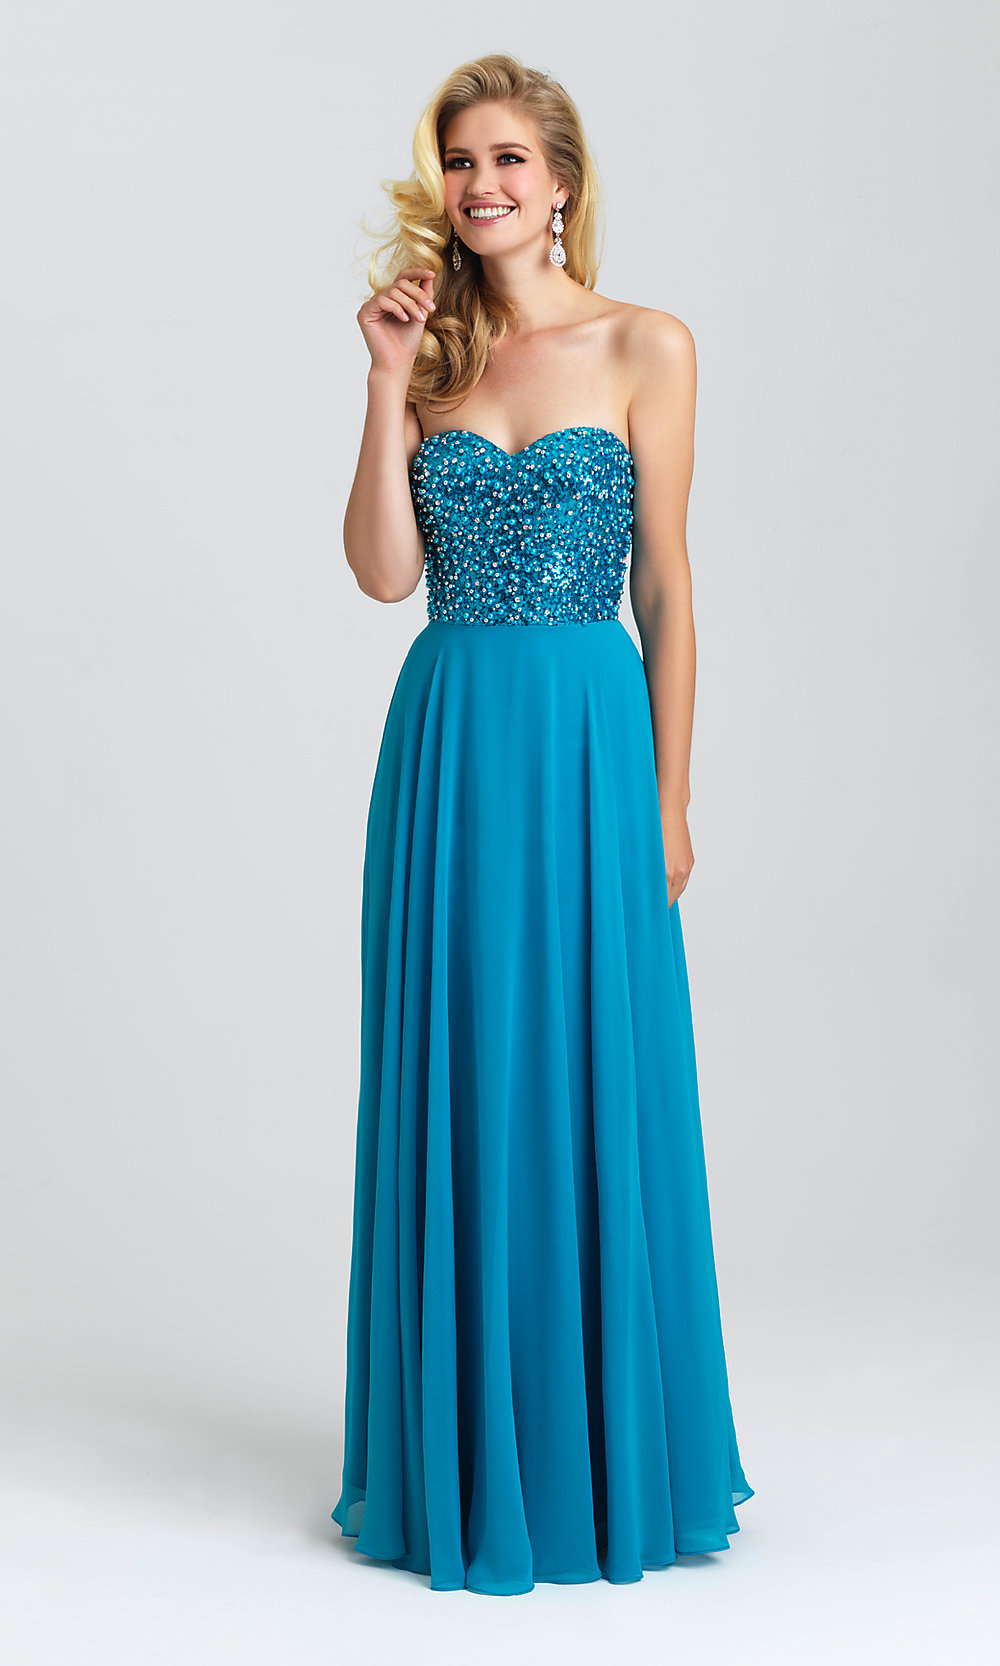 Sexy Prom Dresses 16 - Plus Size Tops